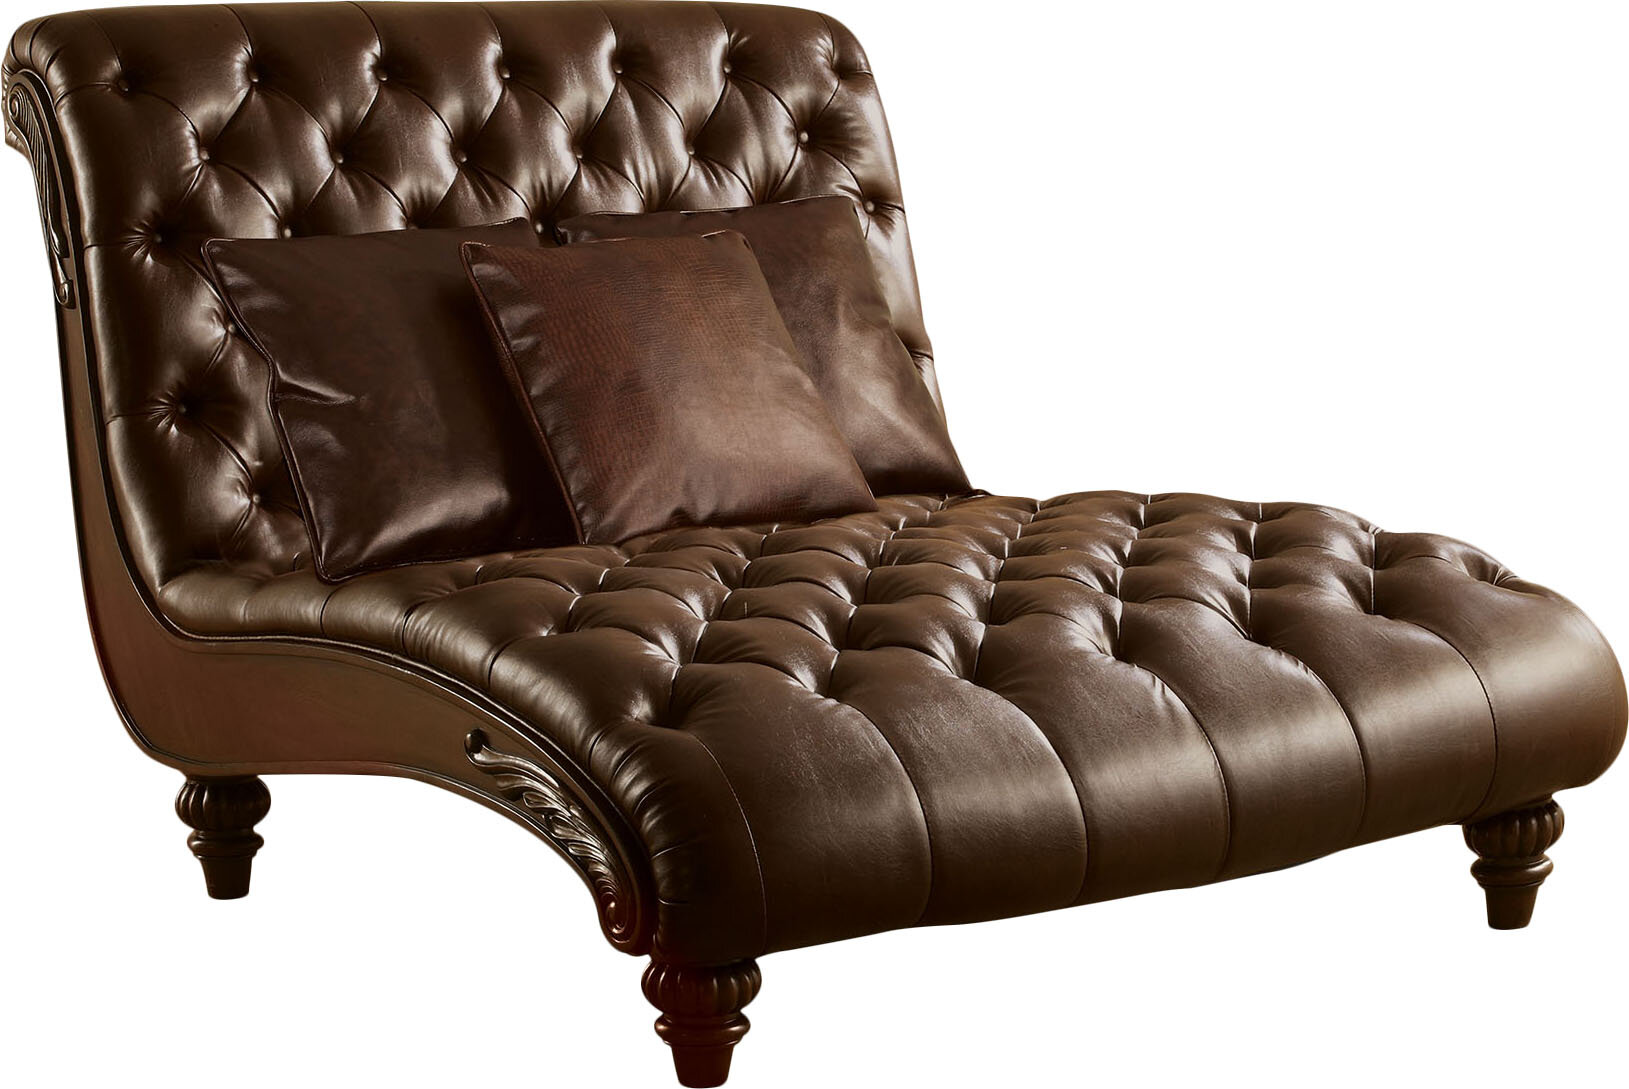 Double Chaise Lounge Indoor Wayfair ~ Double Chaise Sofa Lounger